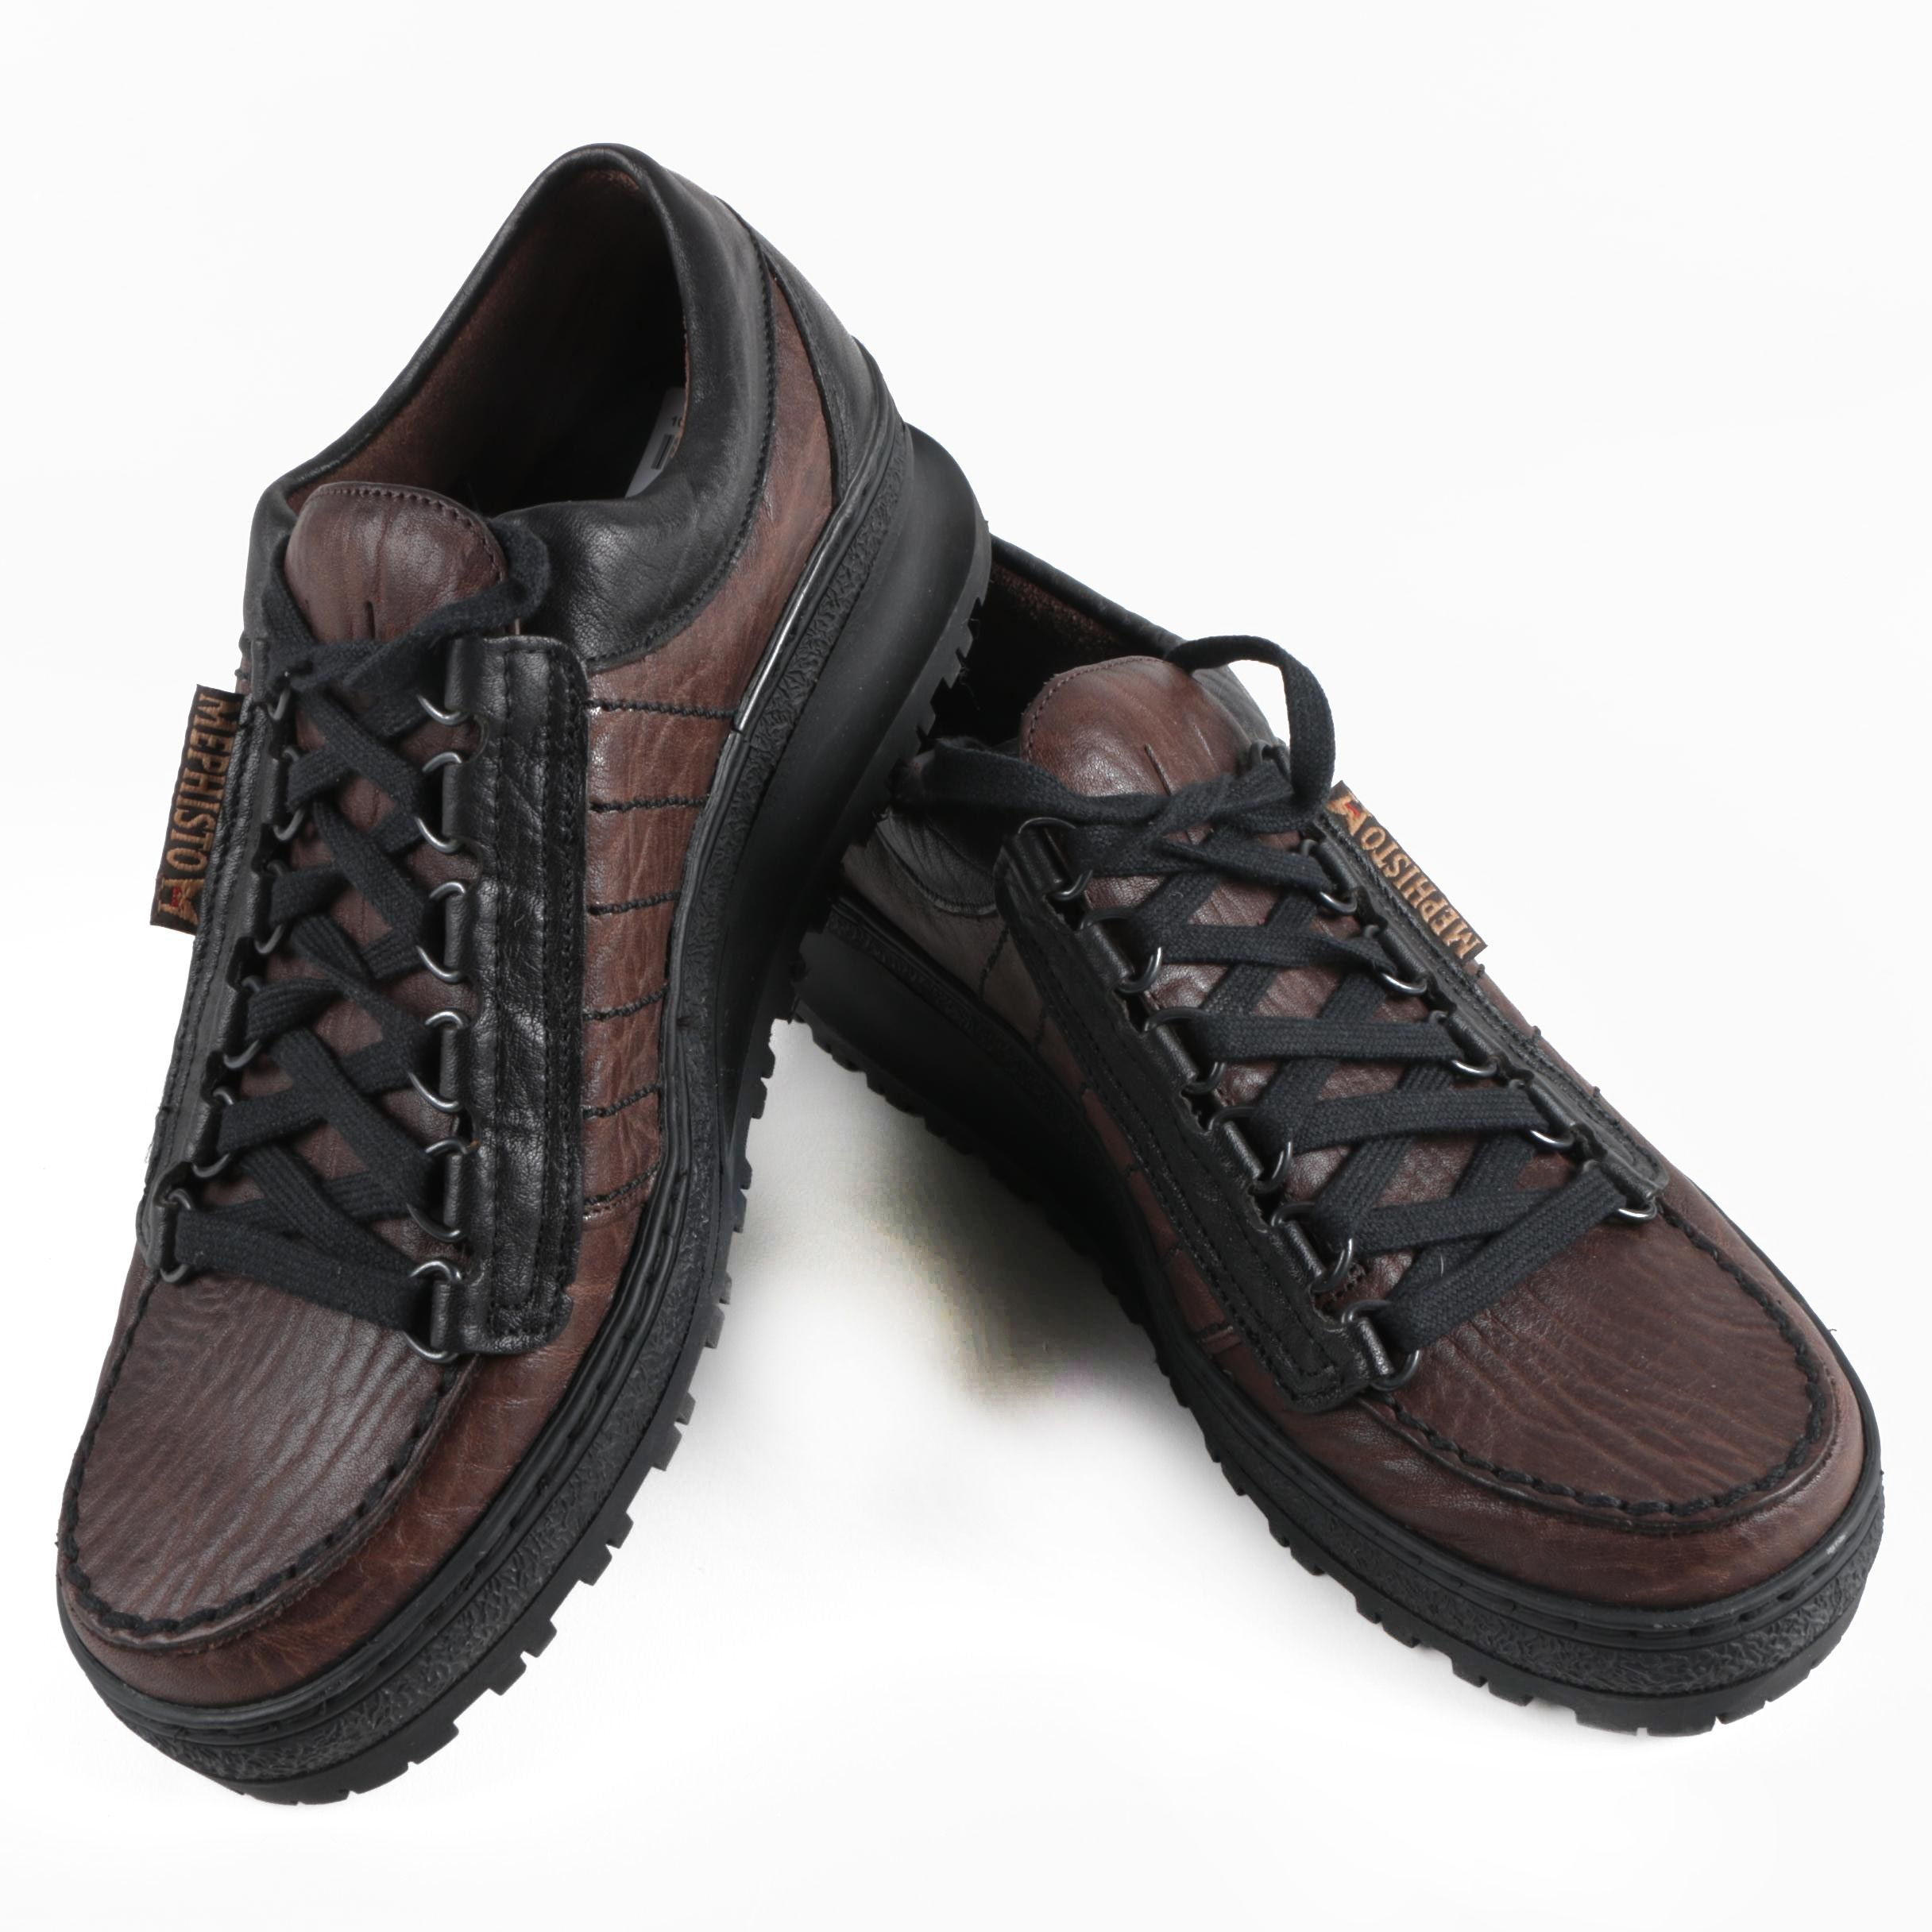 Mephisto Jumper Choix Leather Shoes